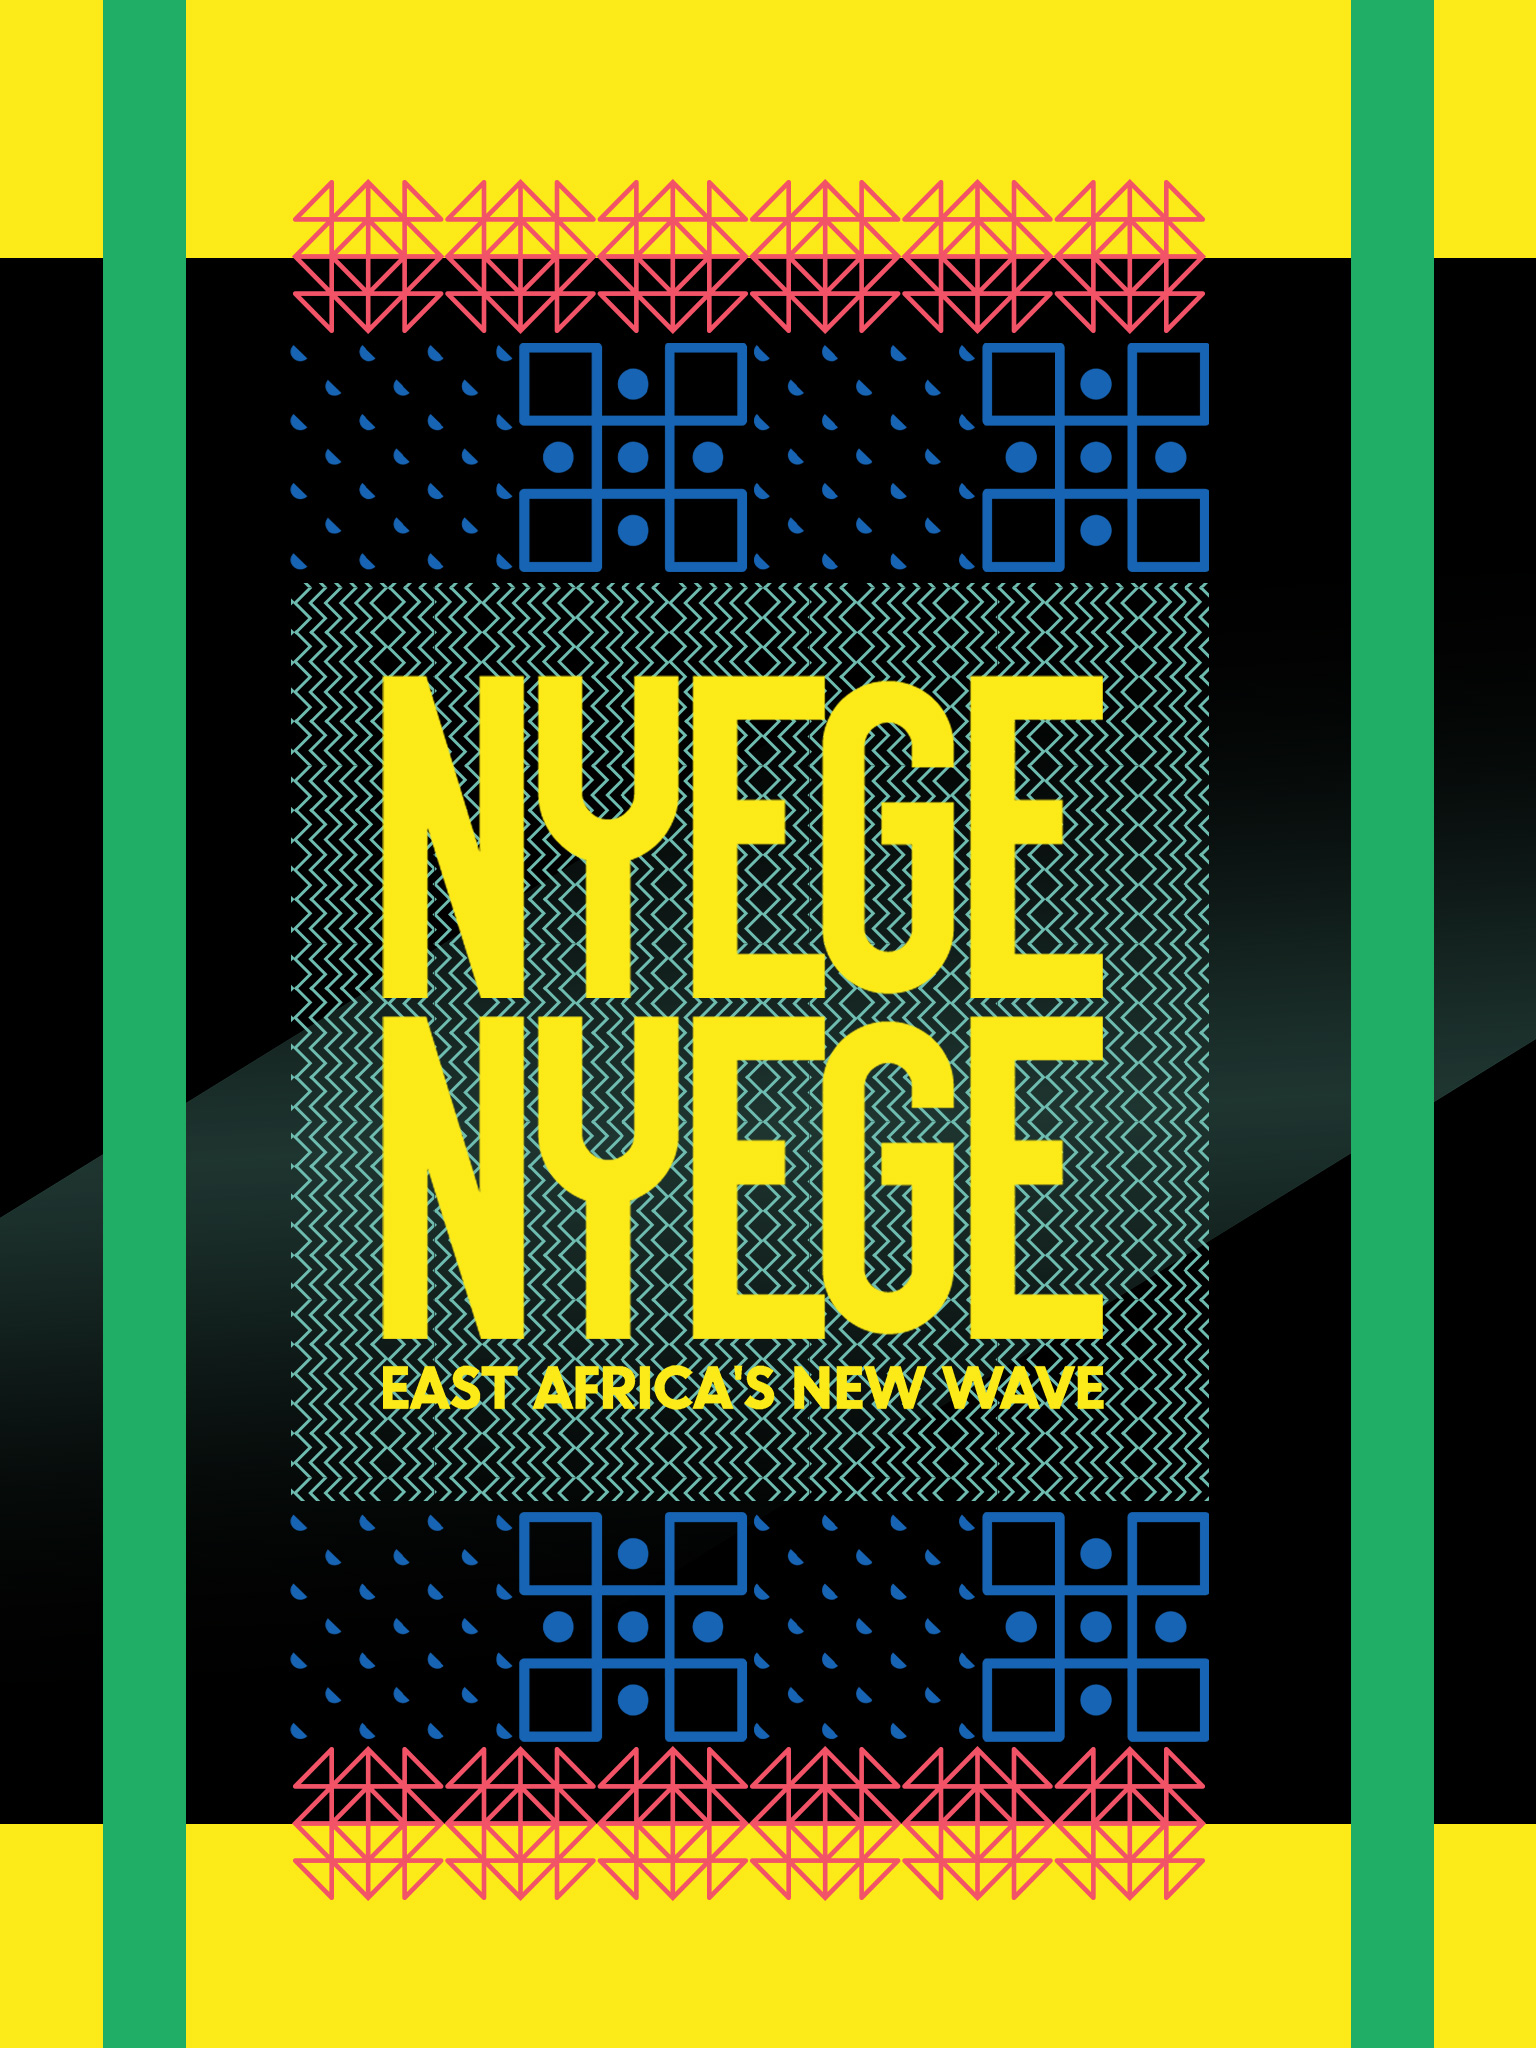 Ra Nyege Nyege East Africas New Wave